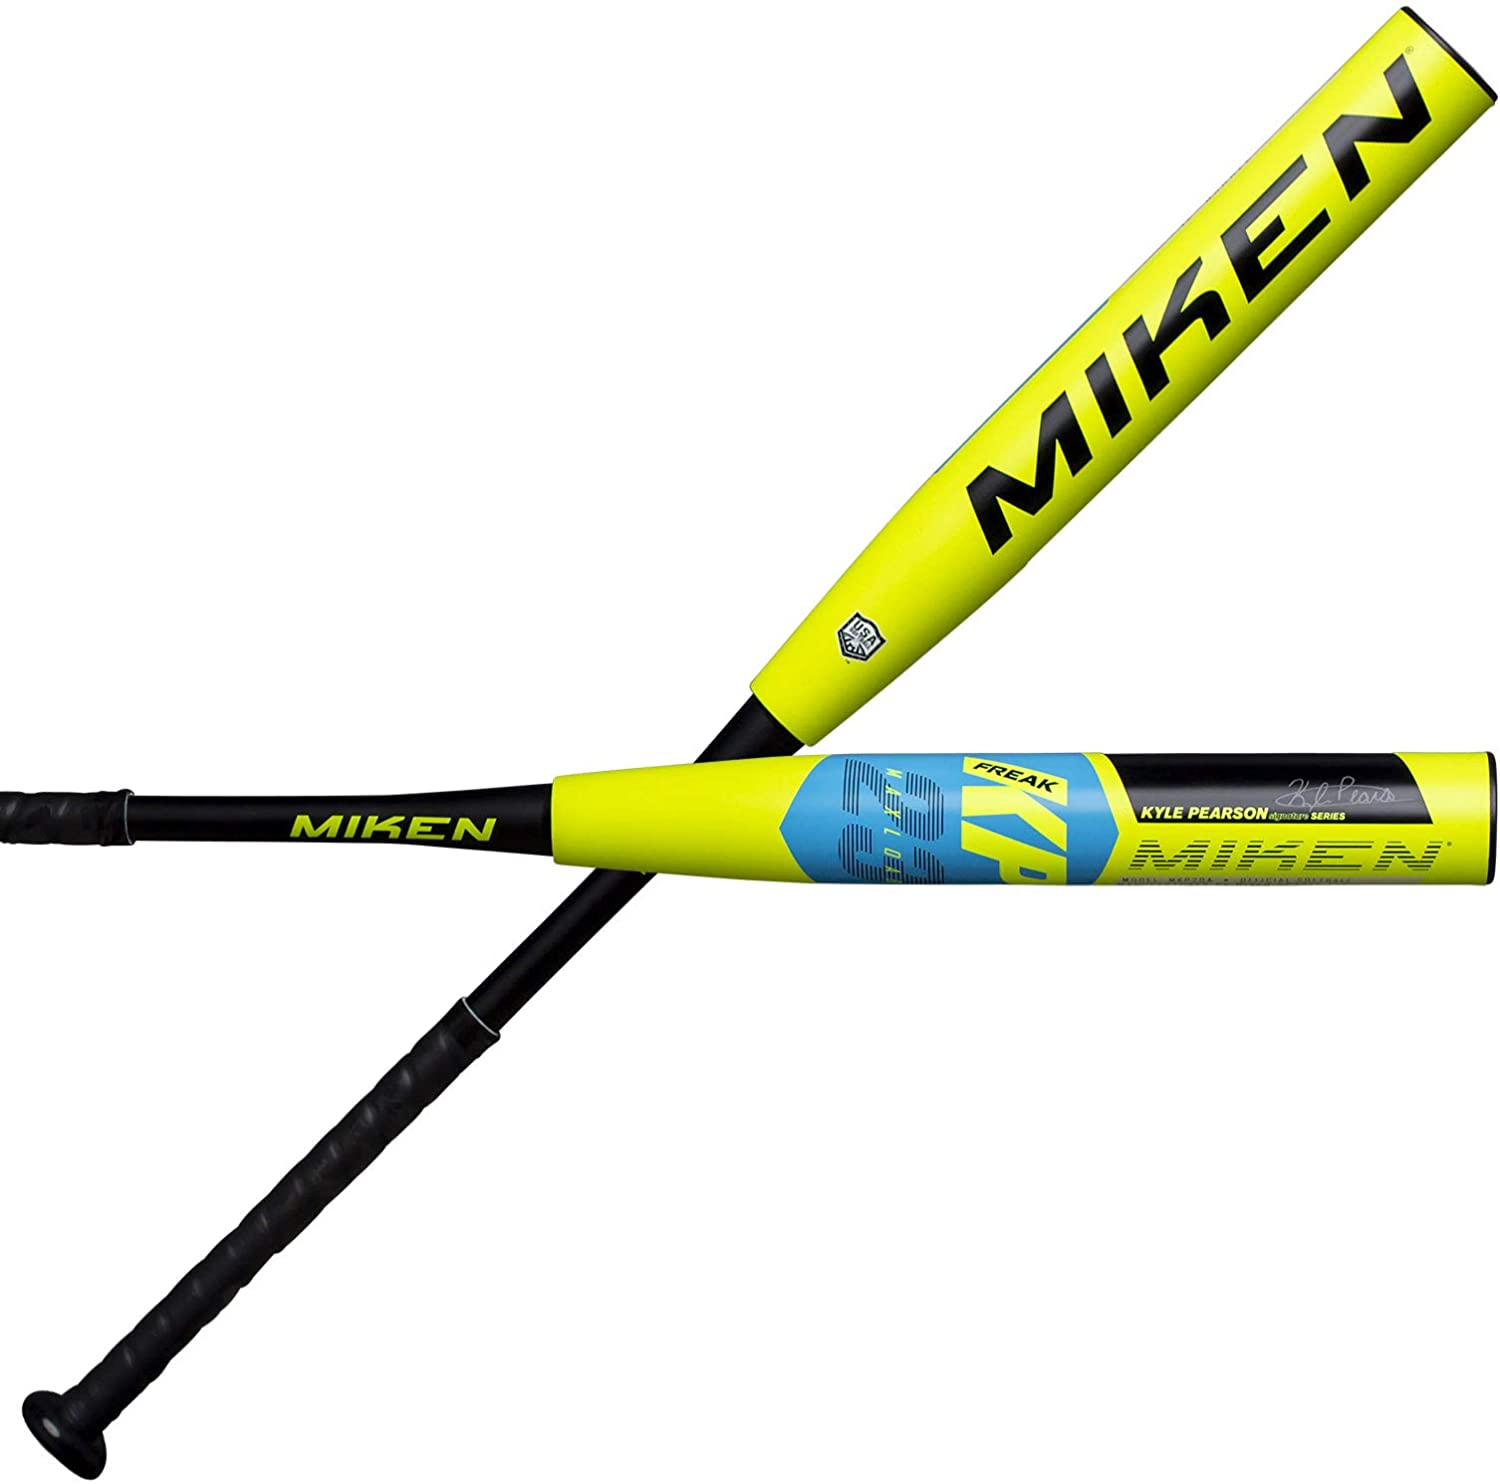 Miken 2020 Kyle Pearson Freak Slowpitch Softball Bat